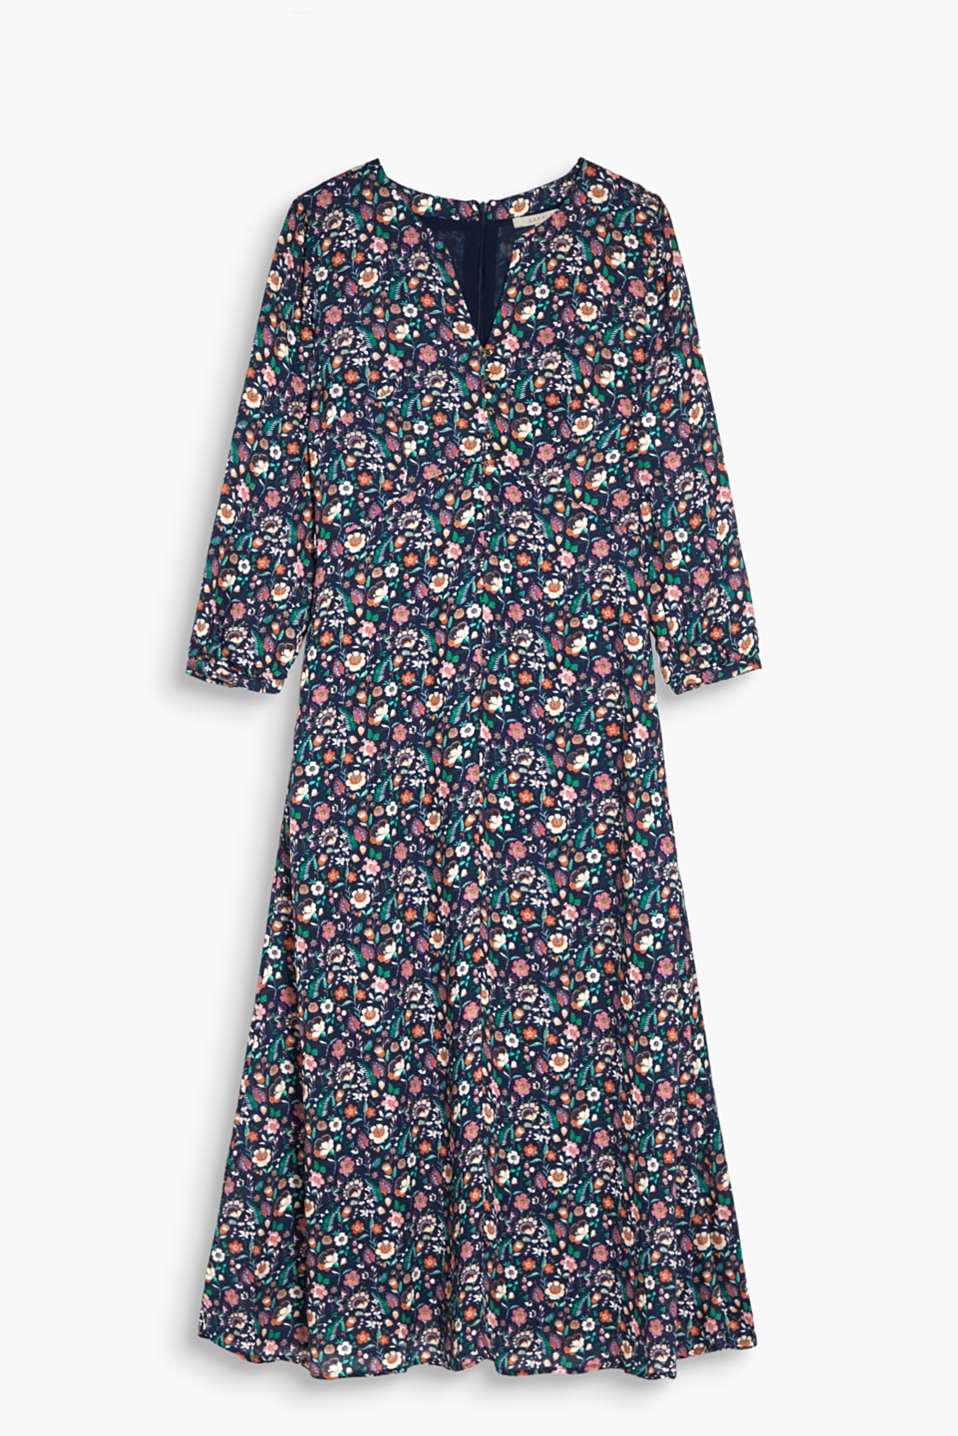 With a swirling skirt: feminine print dress in flowing fabric